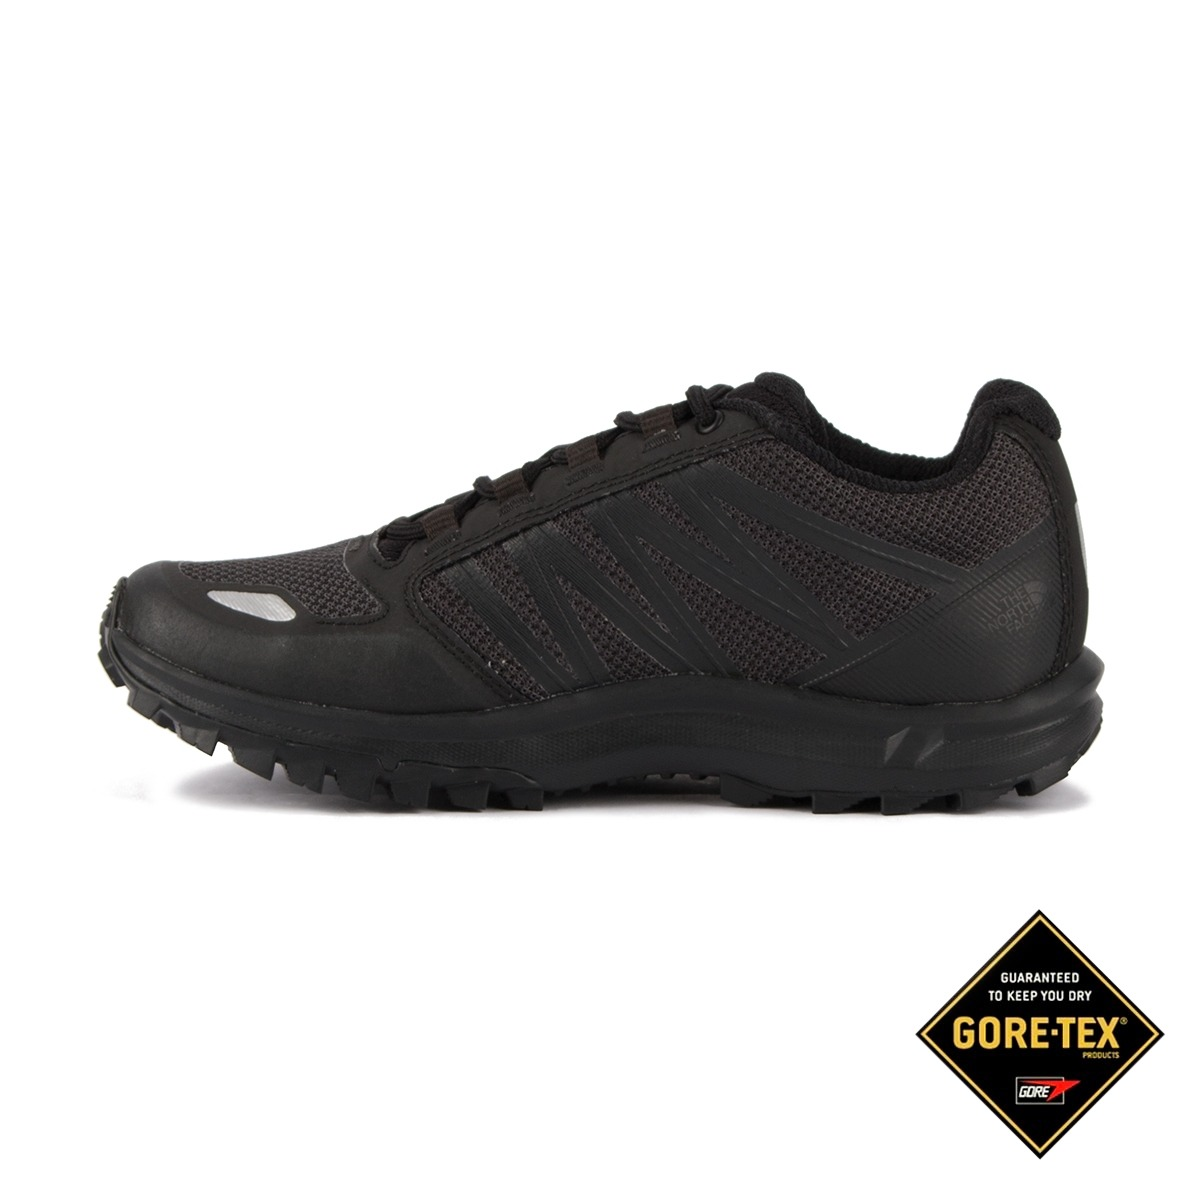 The North Face Litewave Fastpack GTX Black Negro Goretex Mujer